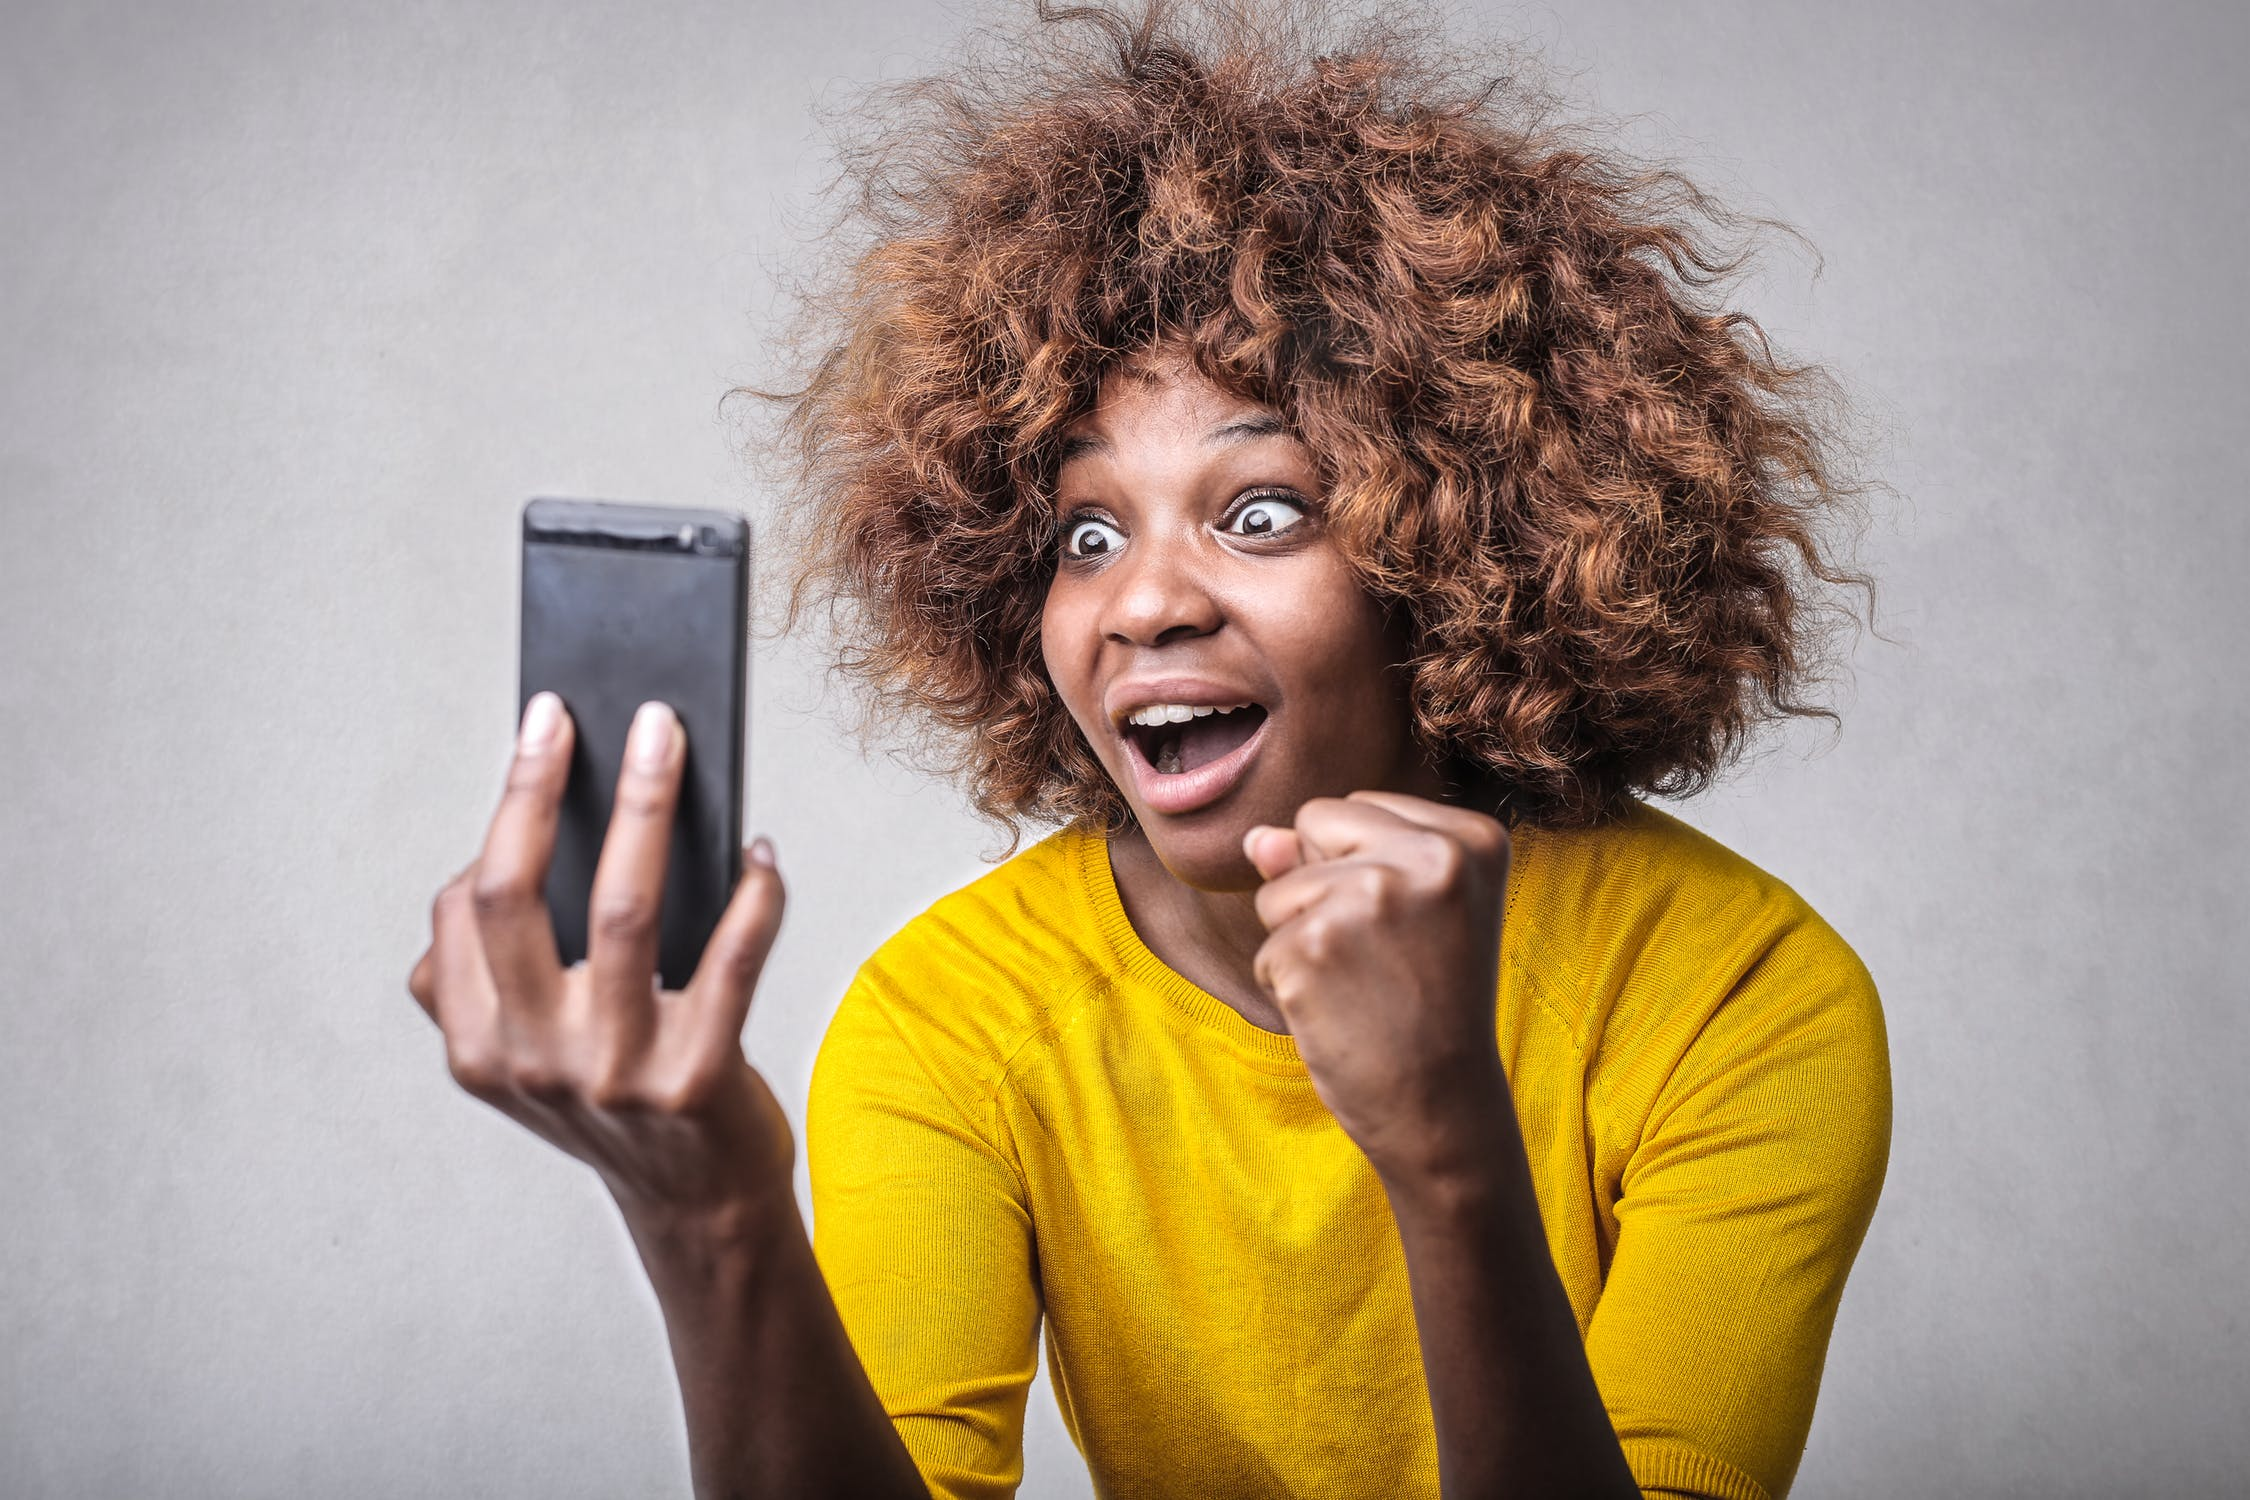 How To Video Call With An Android Phone